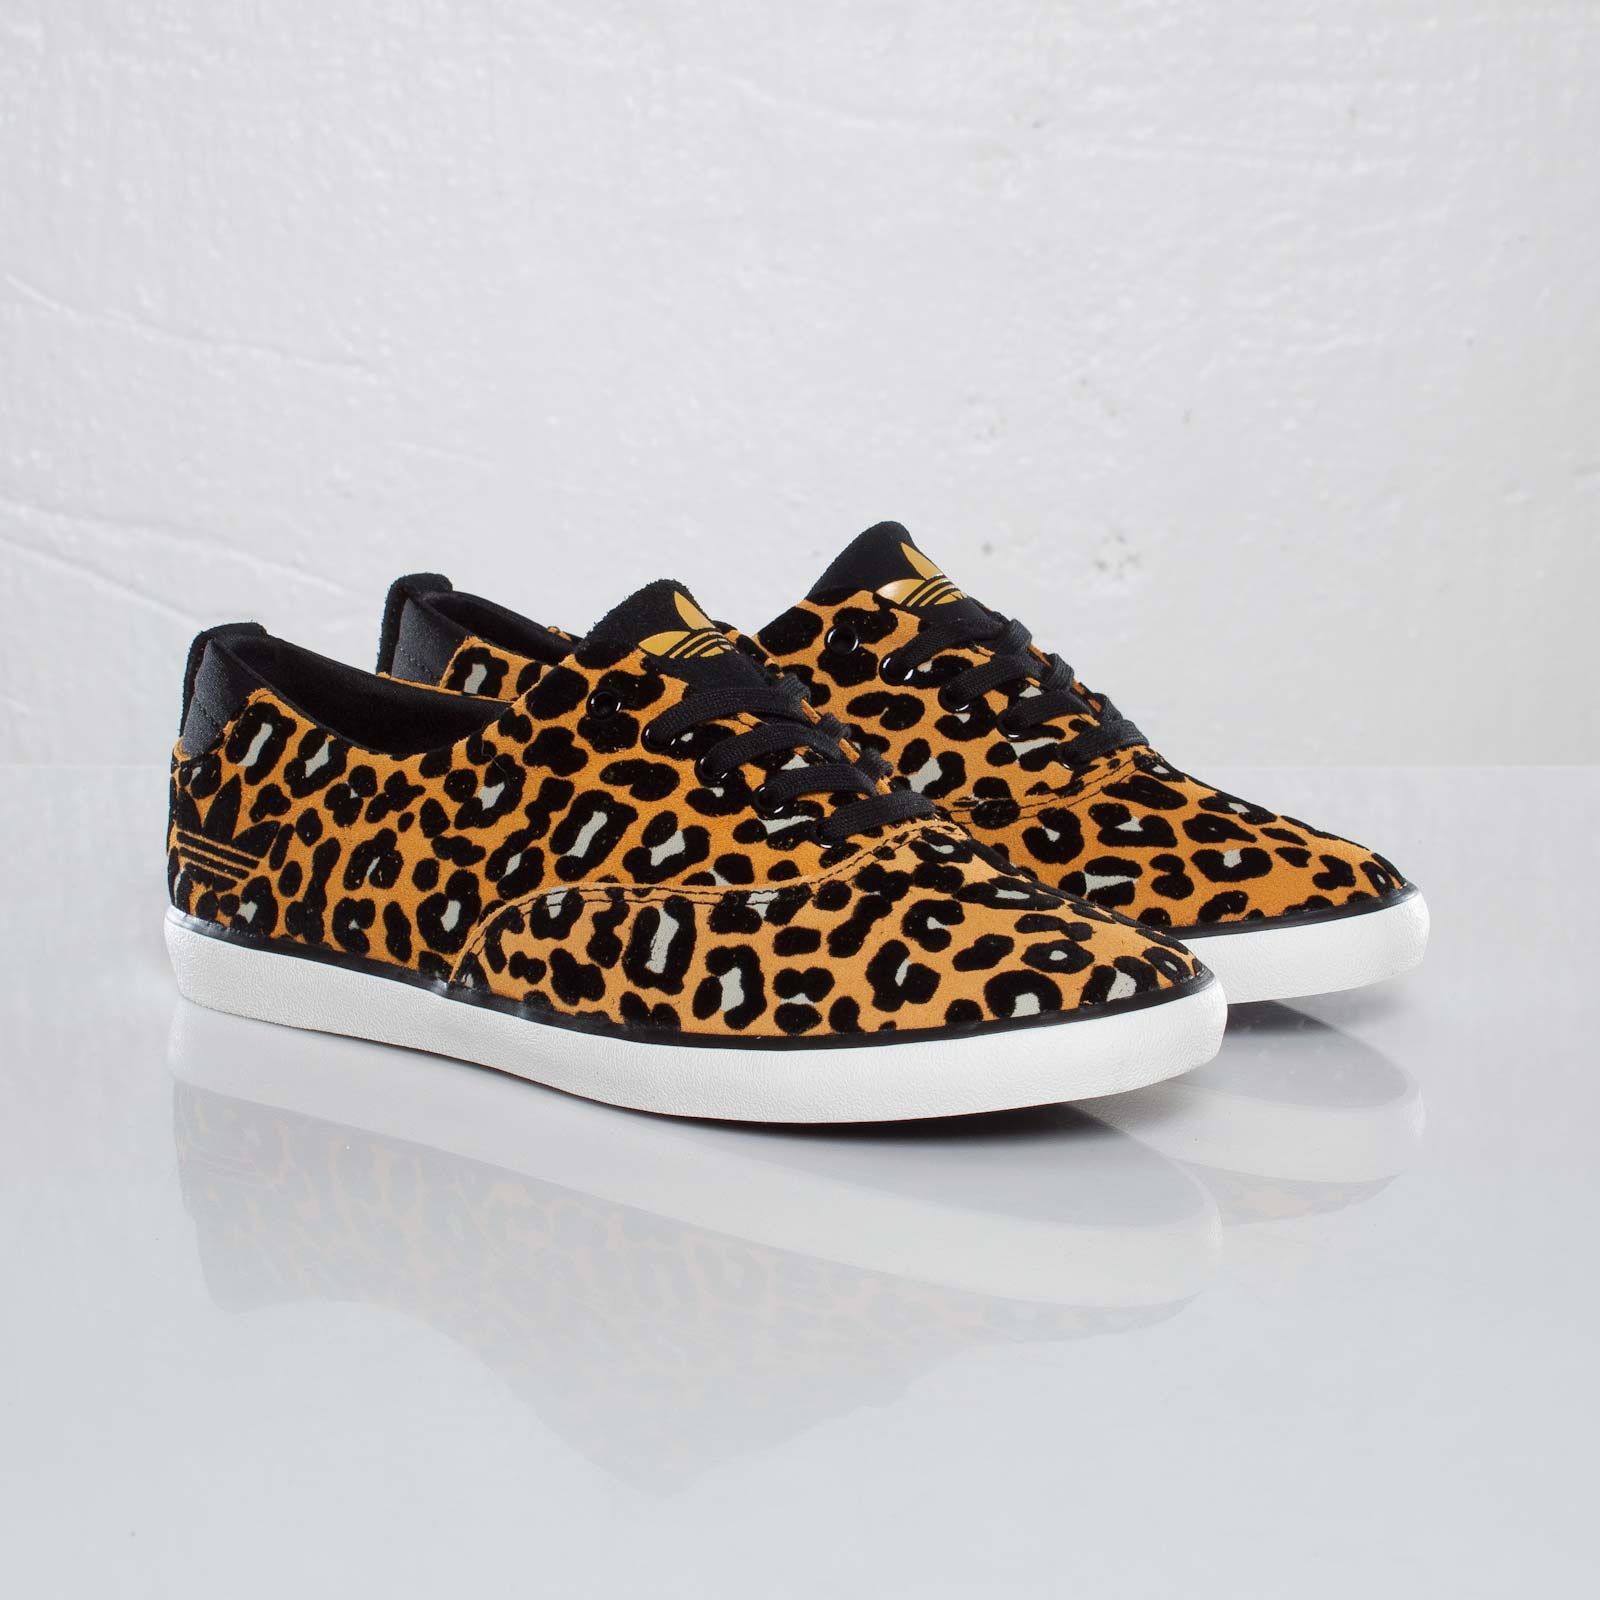 adidas Azurine Low W LD G60991 Sneakersnstuff I Sneakers